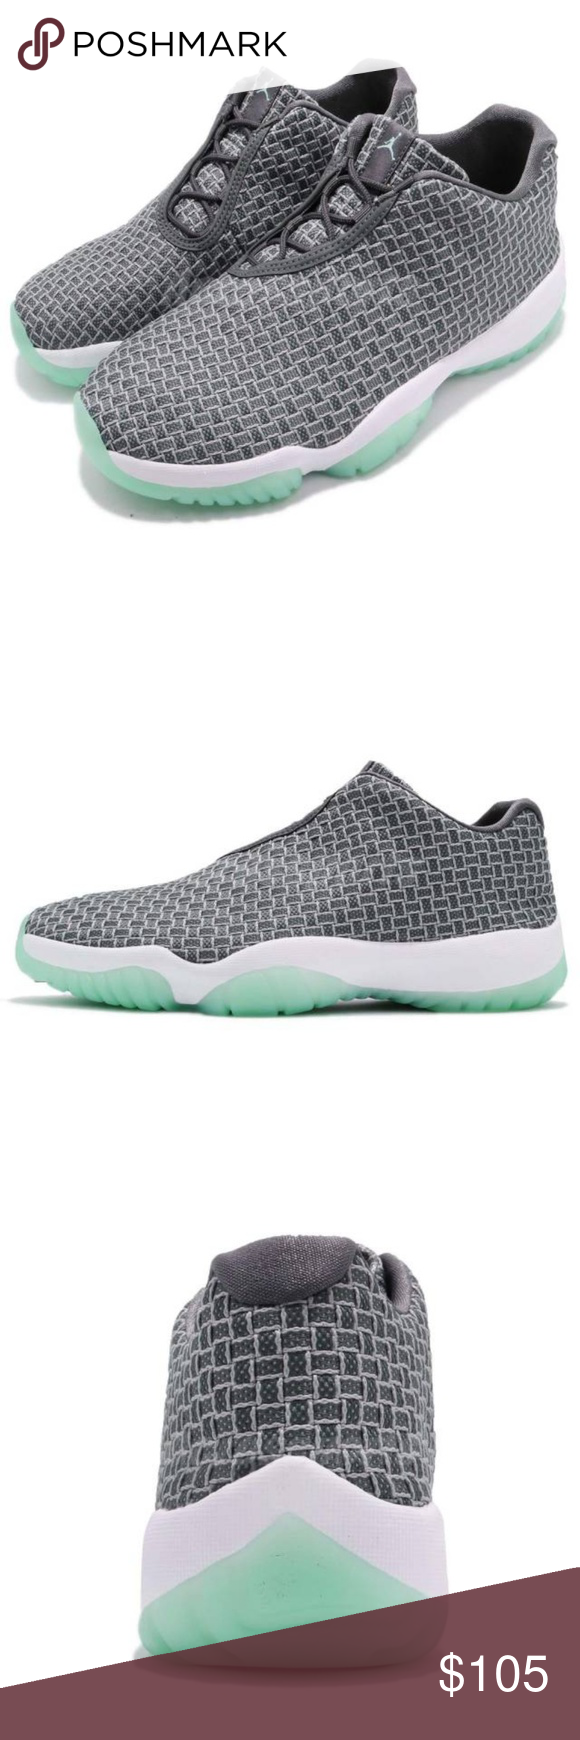 e0cfdaf3654 Jordan Men's Air Future Low, Wolf Grey SIZE:11.5 M ordan Men's Air Future